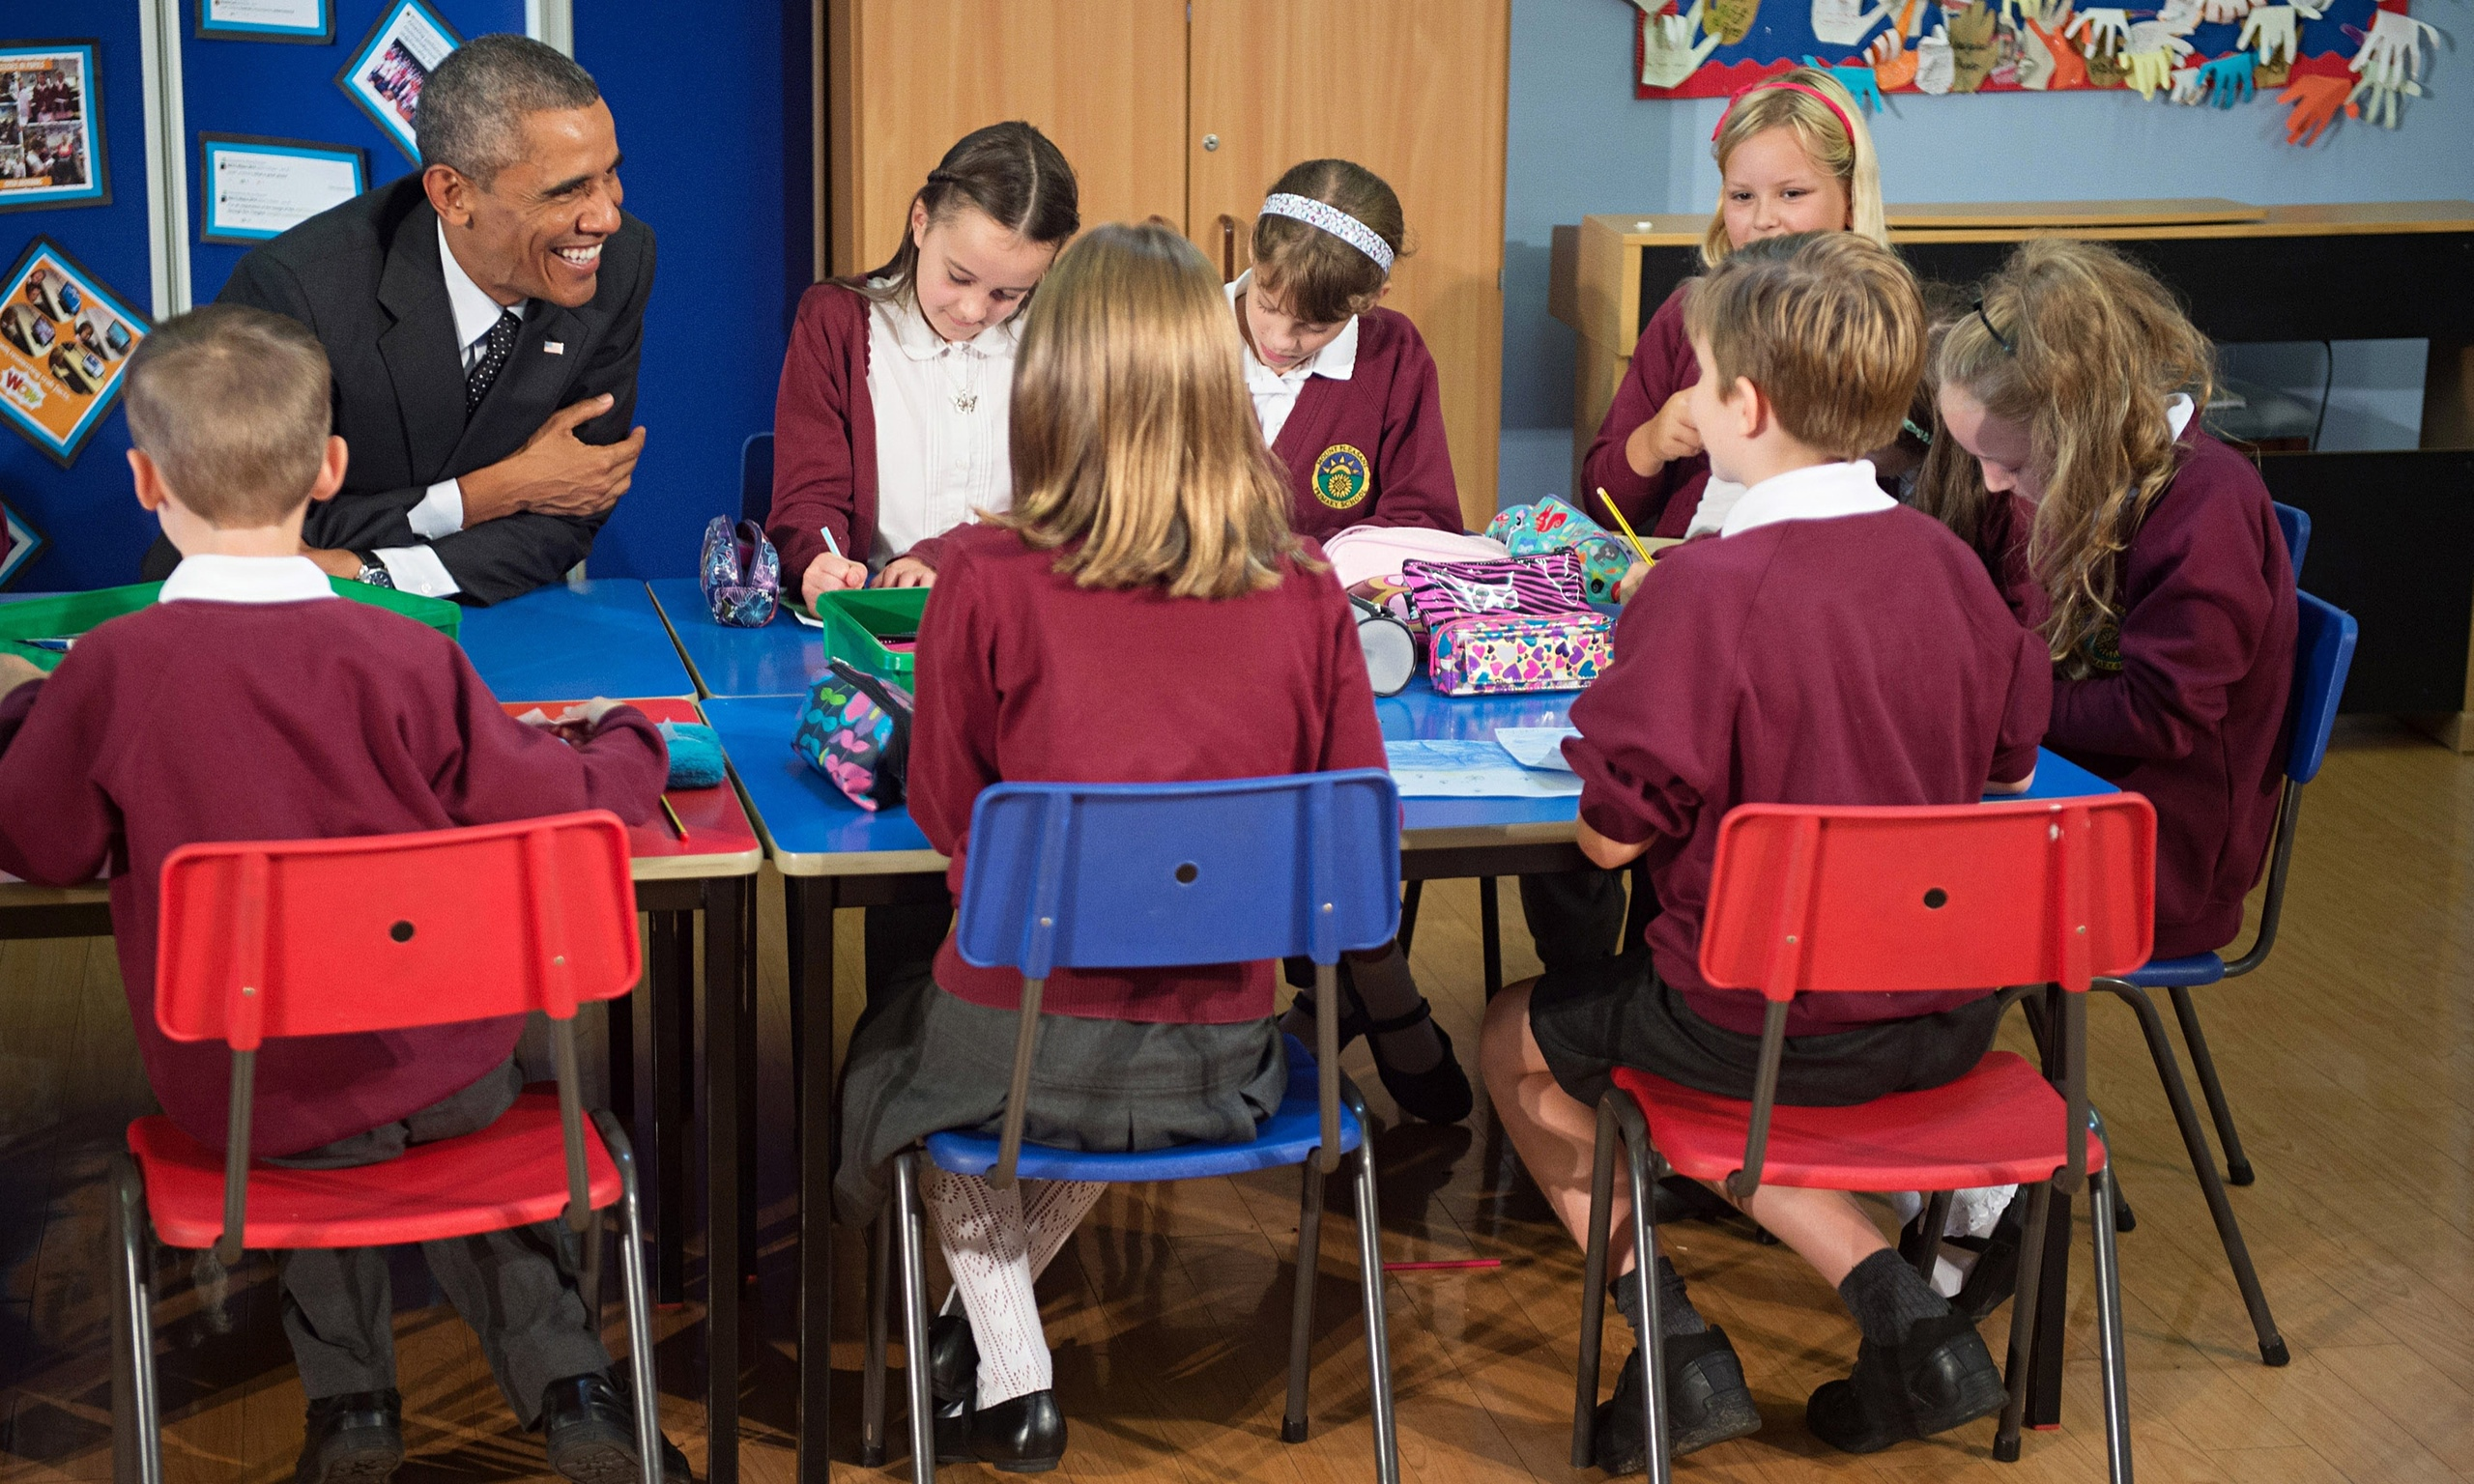 Barack Obama Visits A Newport Primary School And Greets Pupils In Welsh